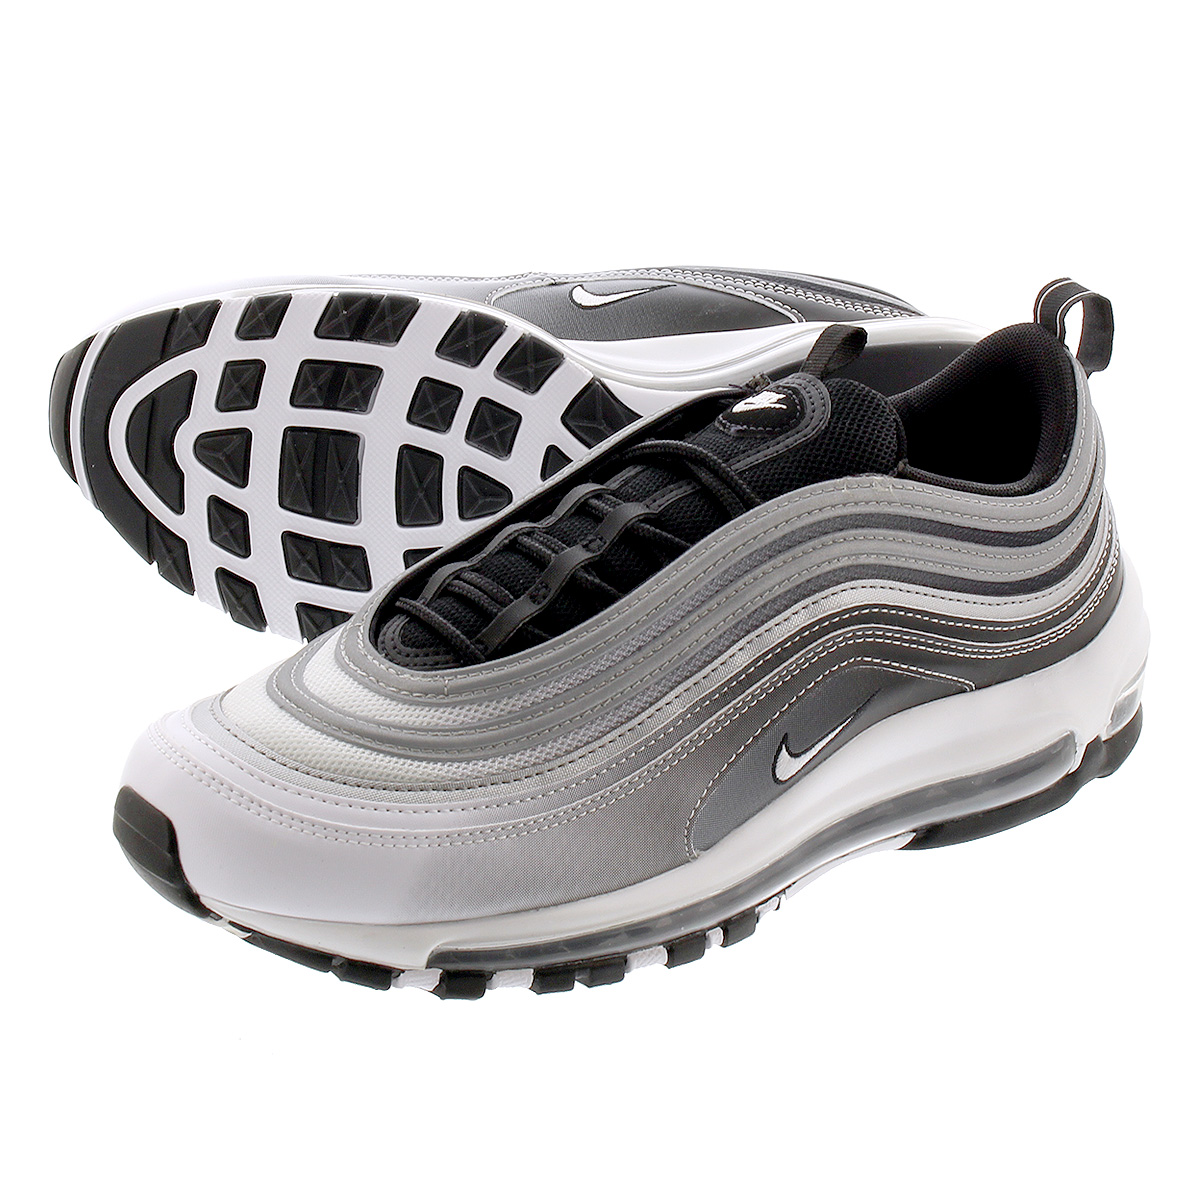 Nike Air Max 97 QS Herrenschuh. Nike AT